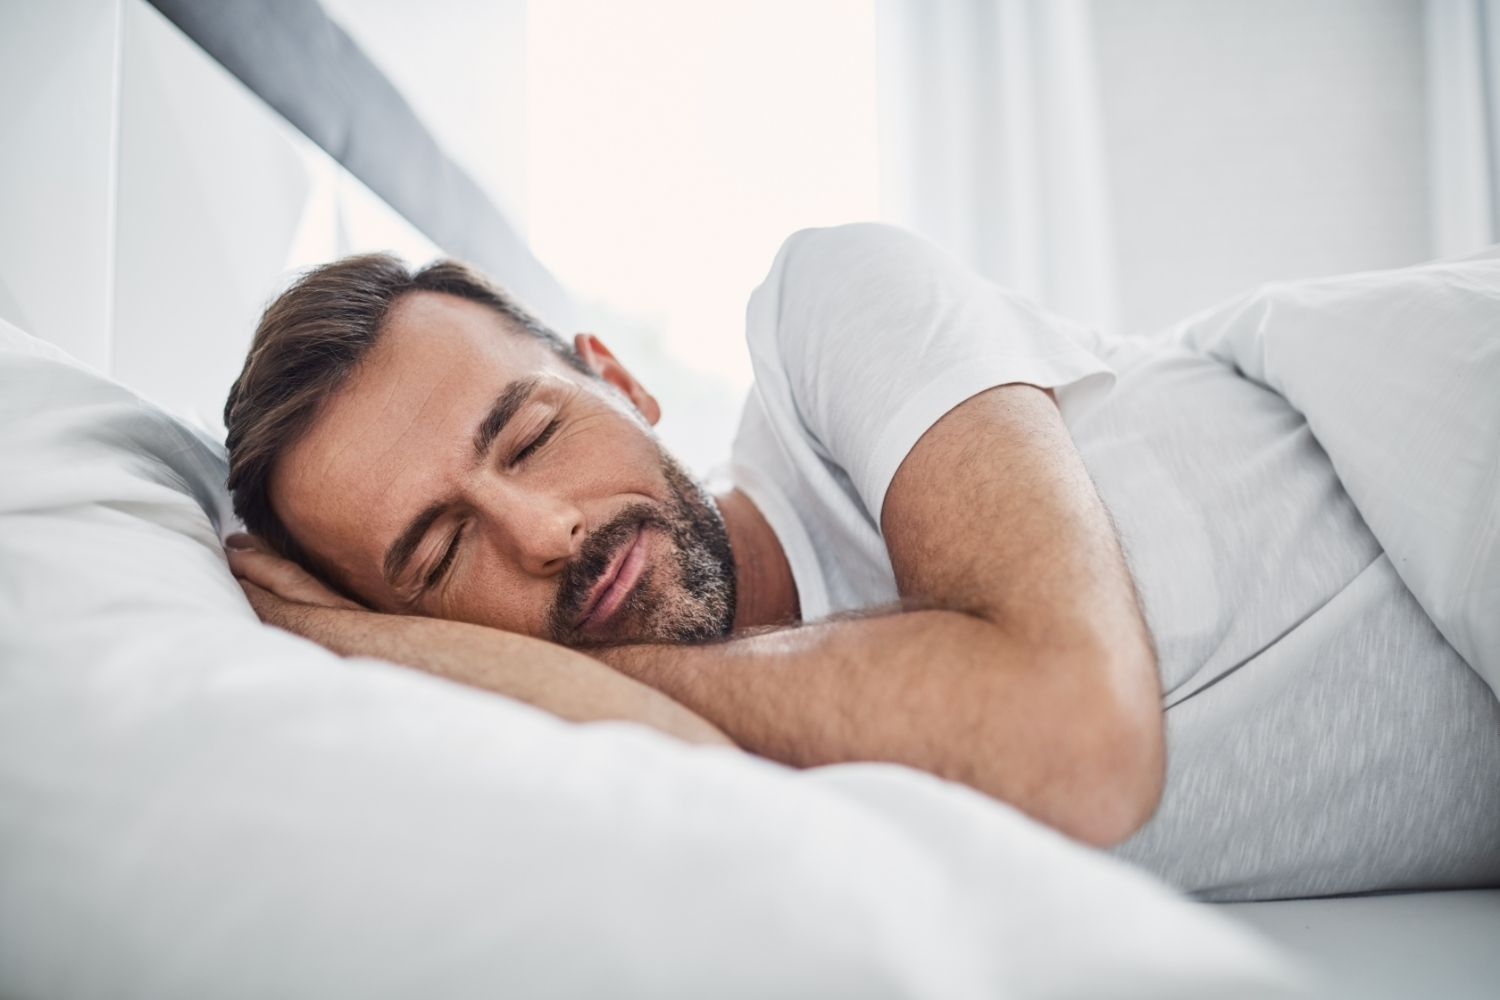 How To Have A Blissful Sleep